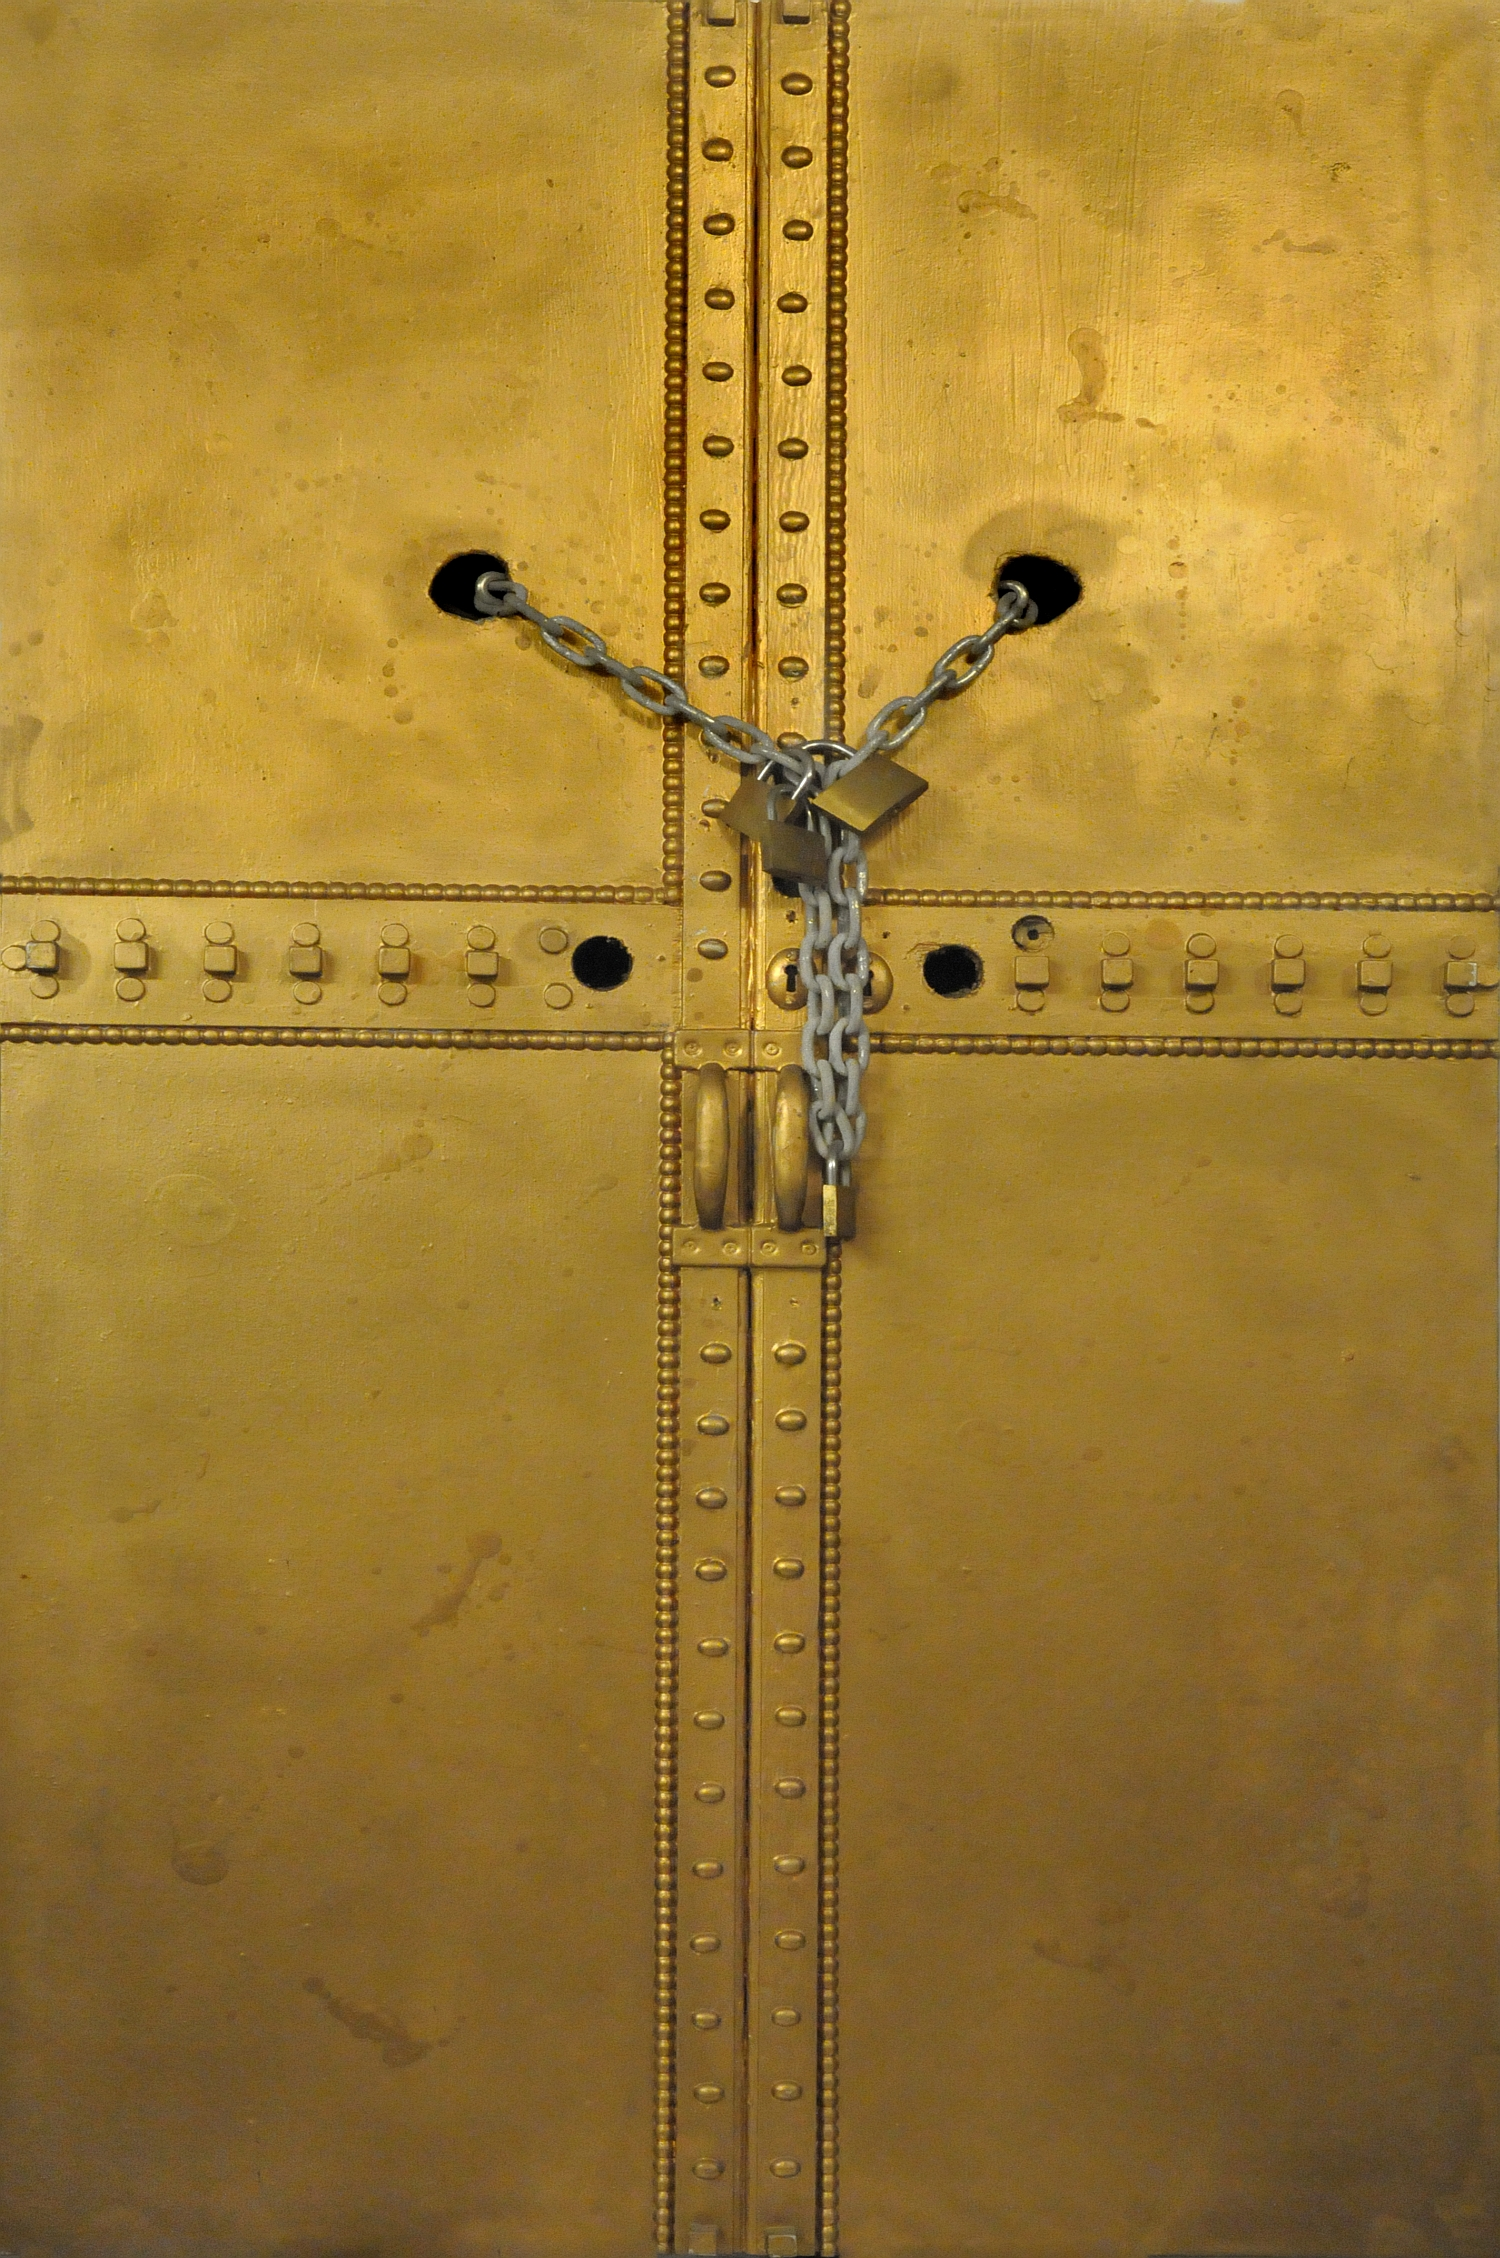 Dogancay Museum - Golden Metal Door, 1991